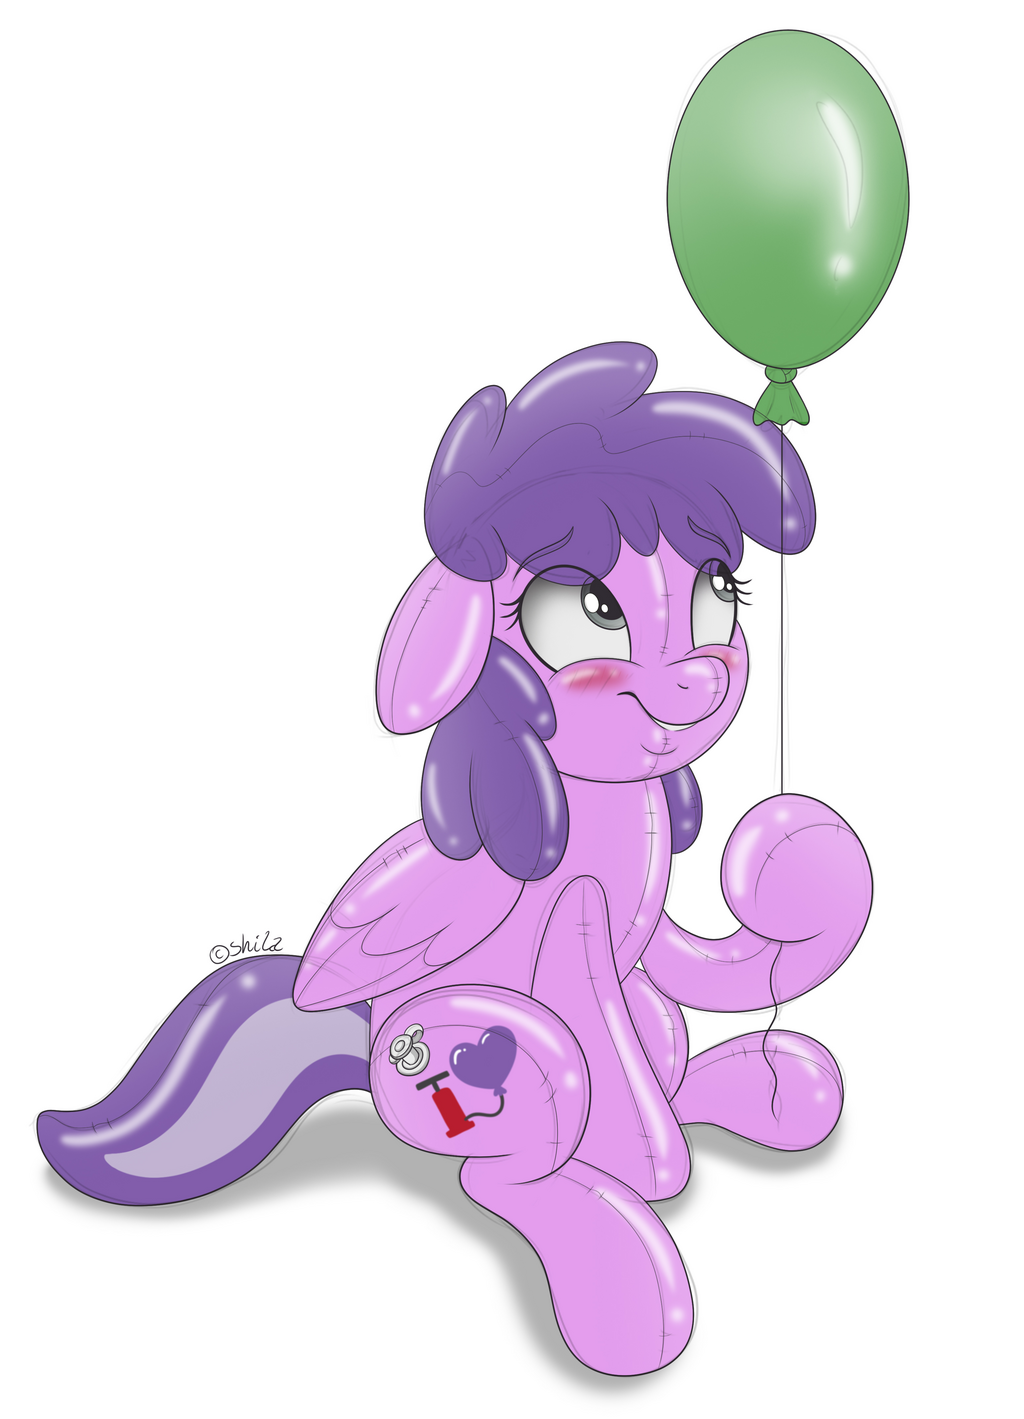 Sweetsqueaks Squeaking by LittleHybrid